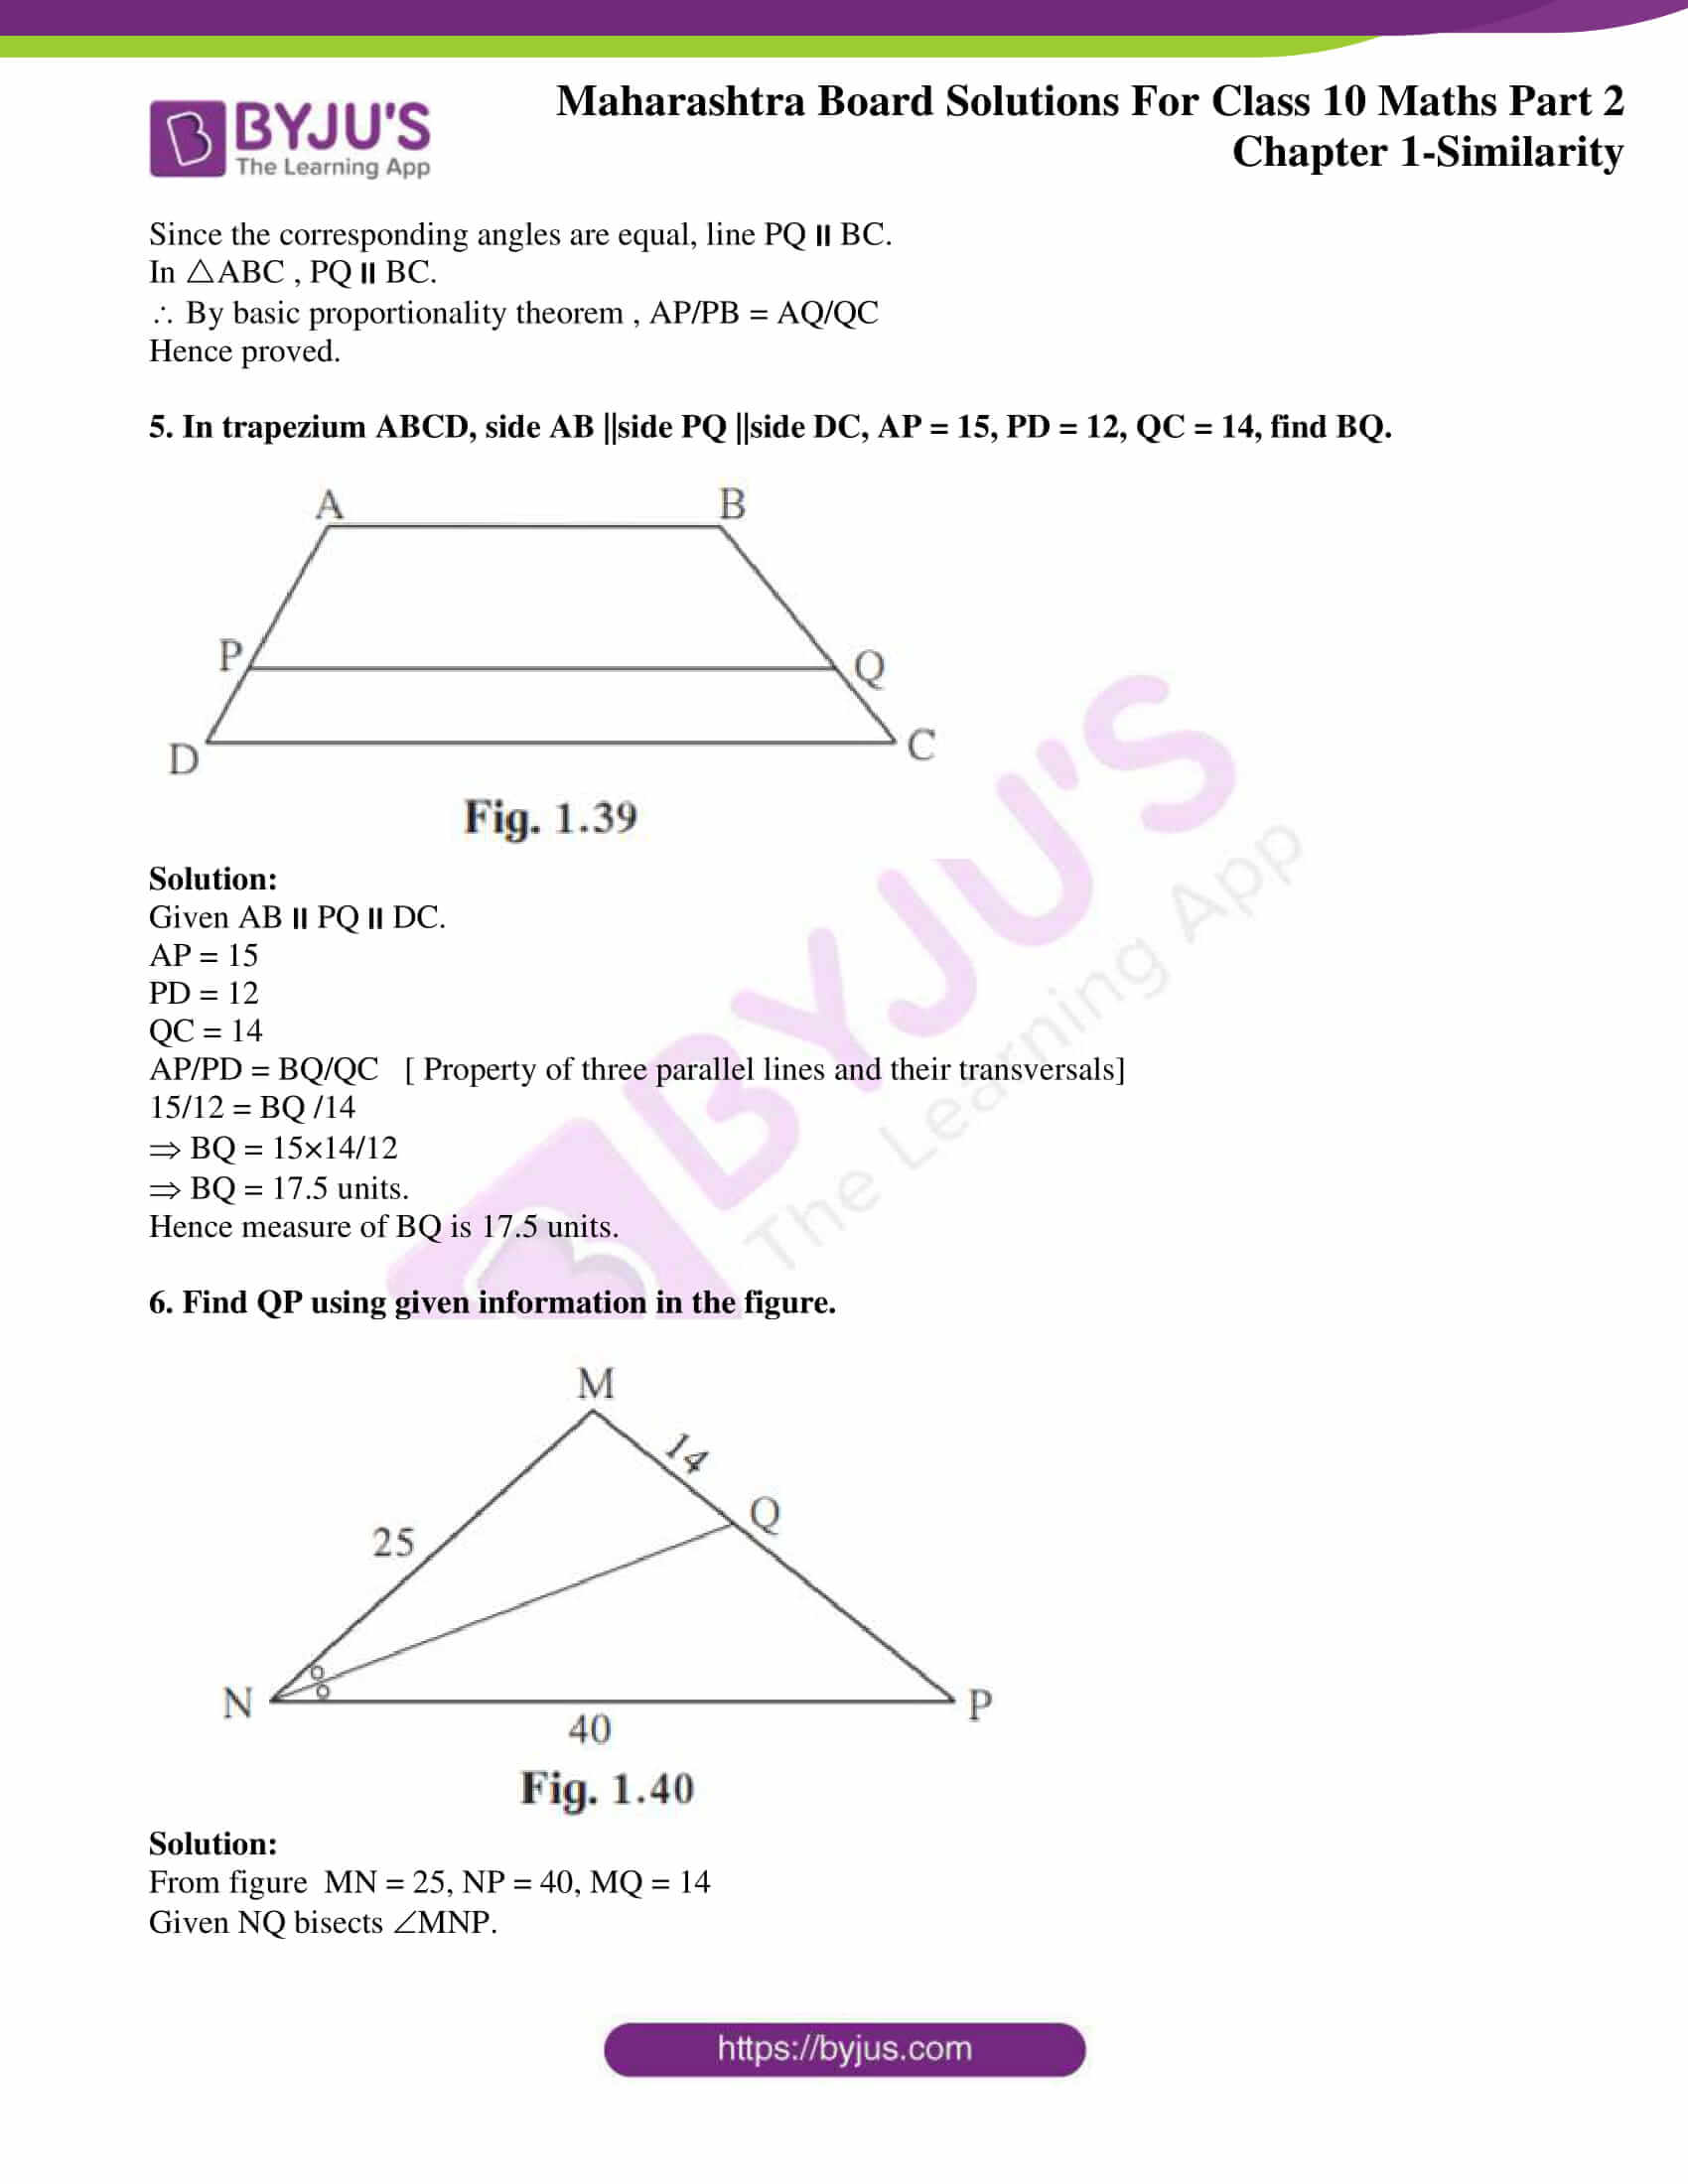 msbshse sol class 10 maths part 2 chapter 1 08